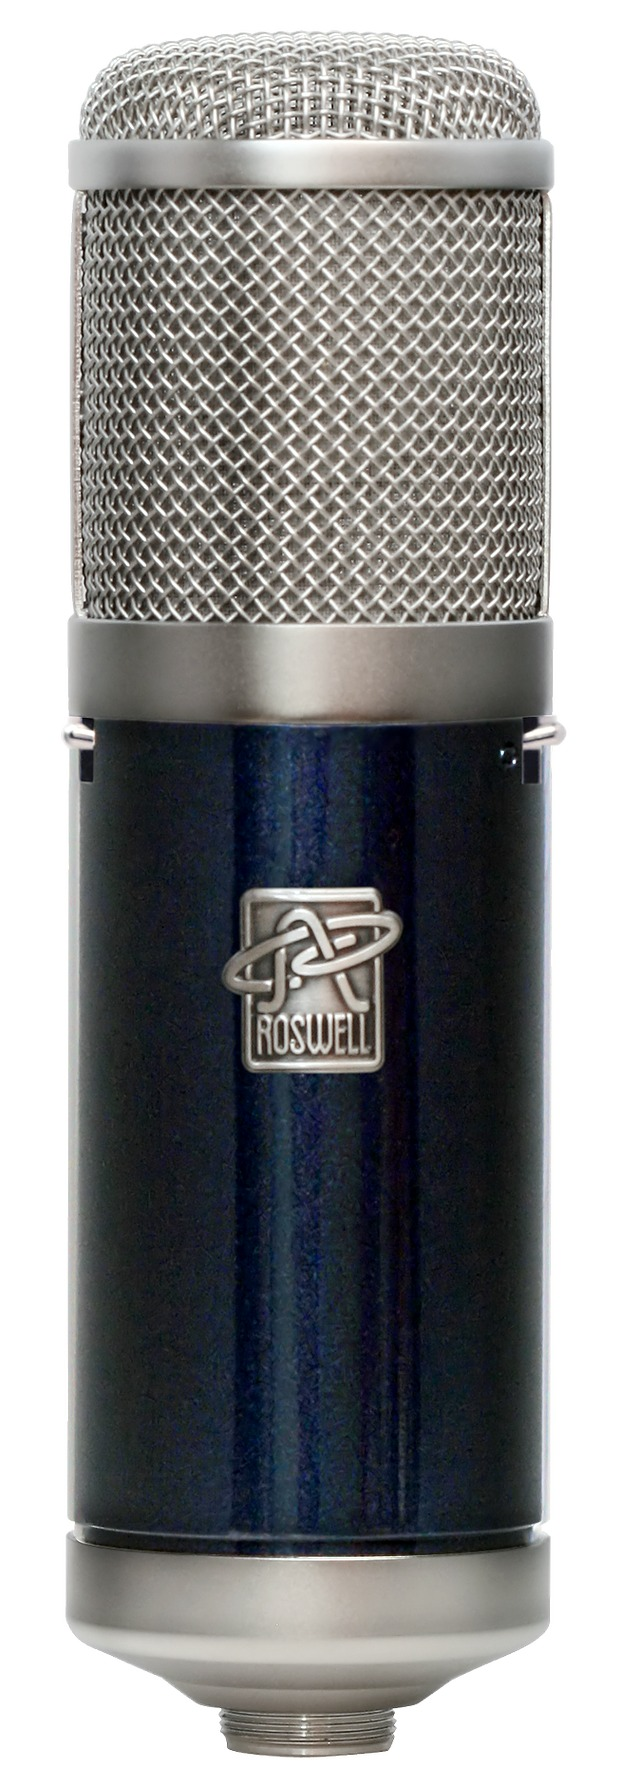 Updated Condenser Mic From Roswell